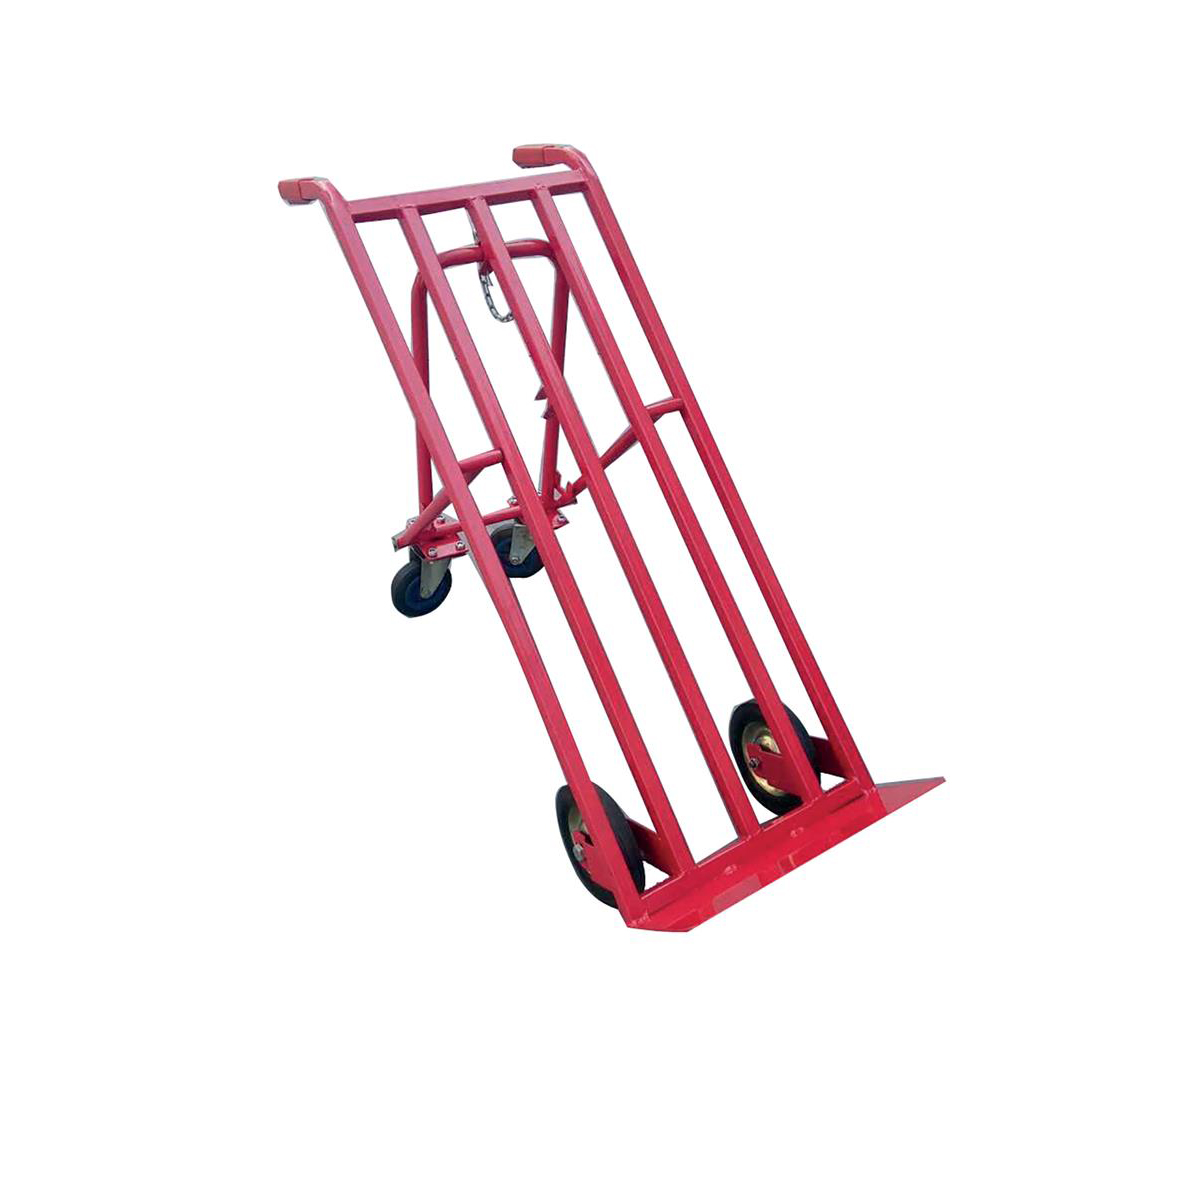 Sack Truck 3 Position Steel Frame Double Rear Castors Capacity 300kg